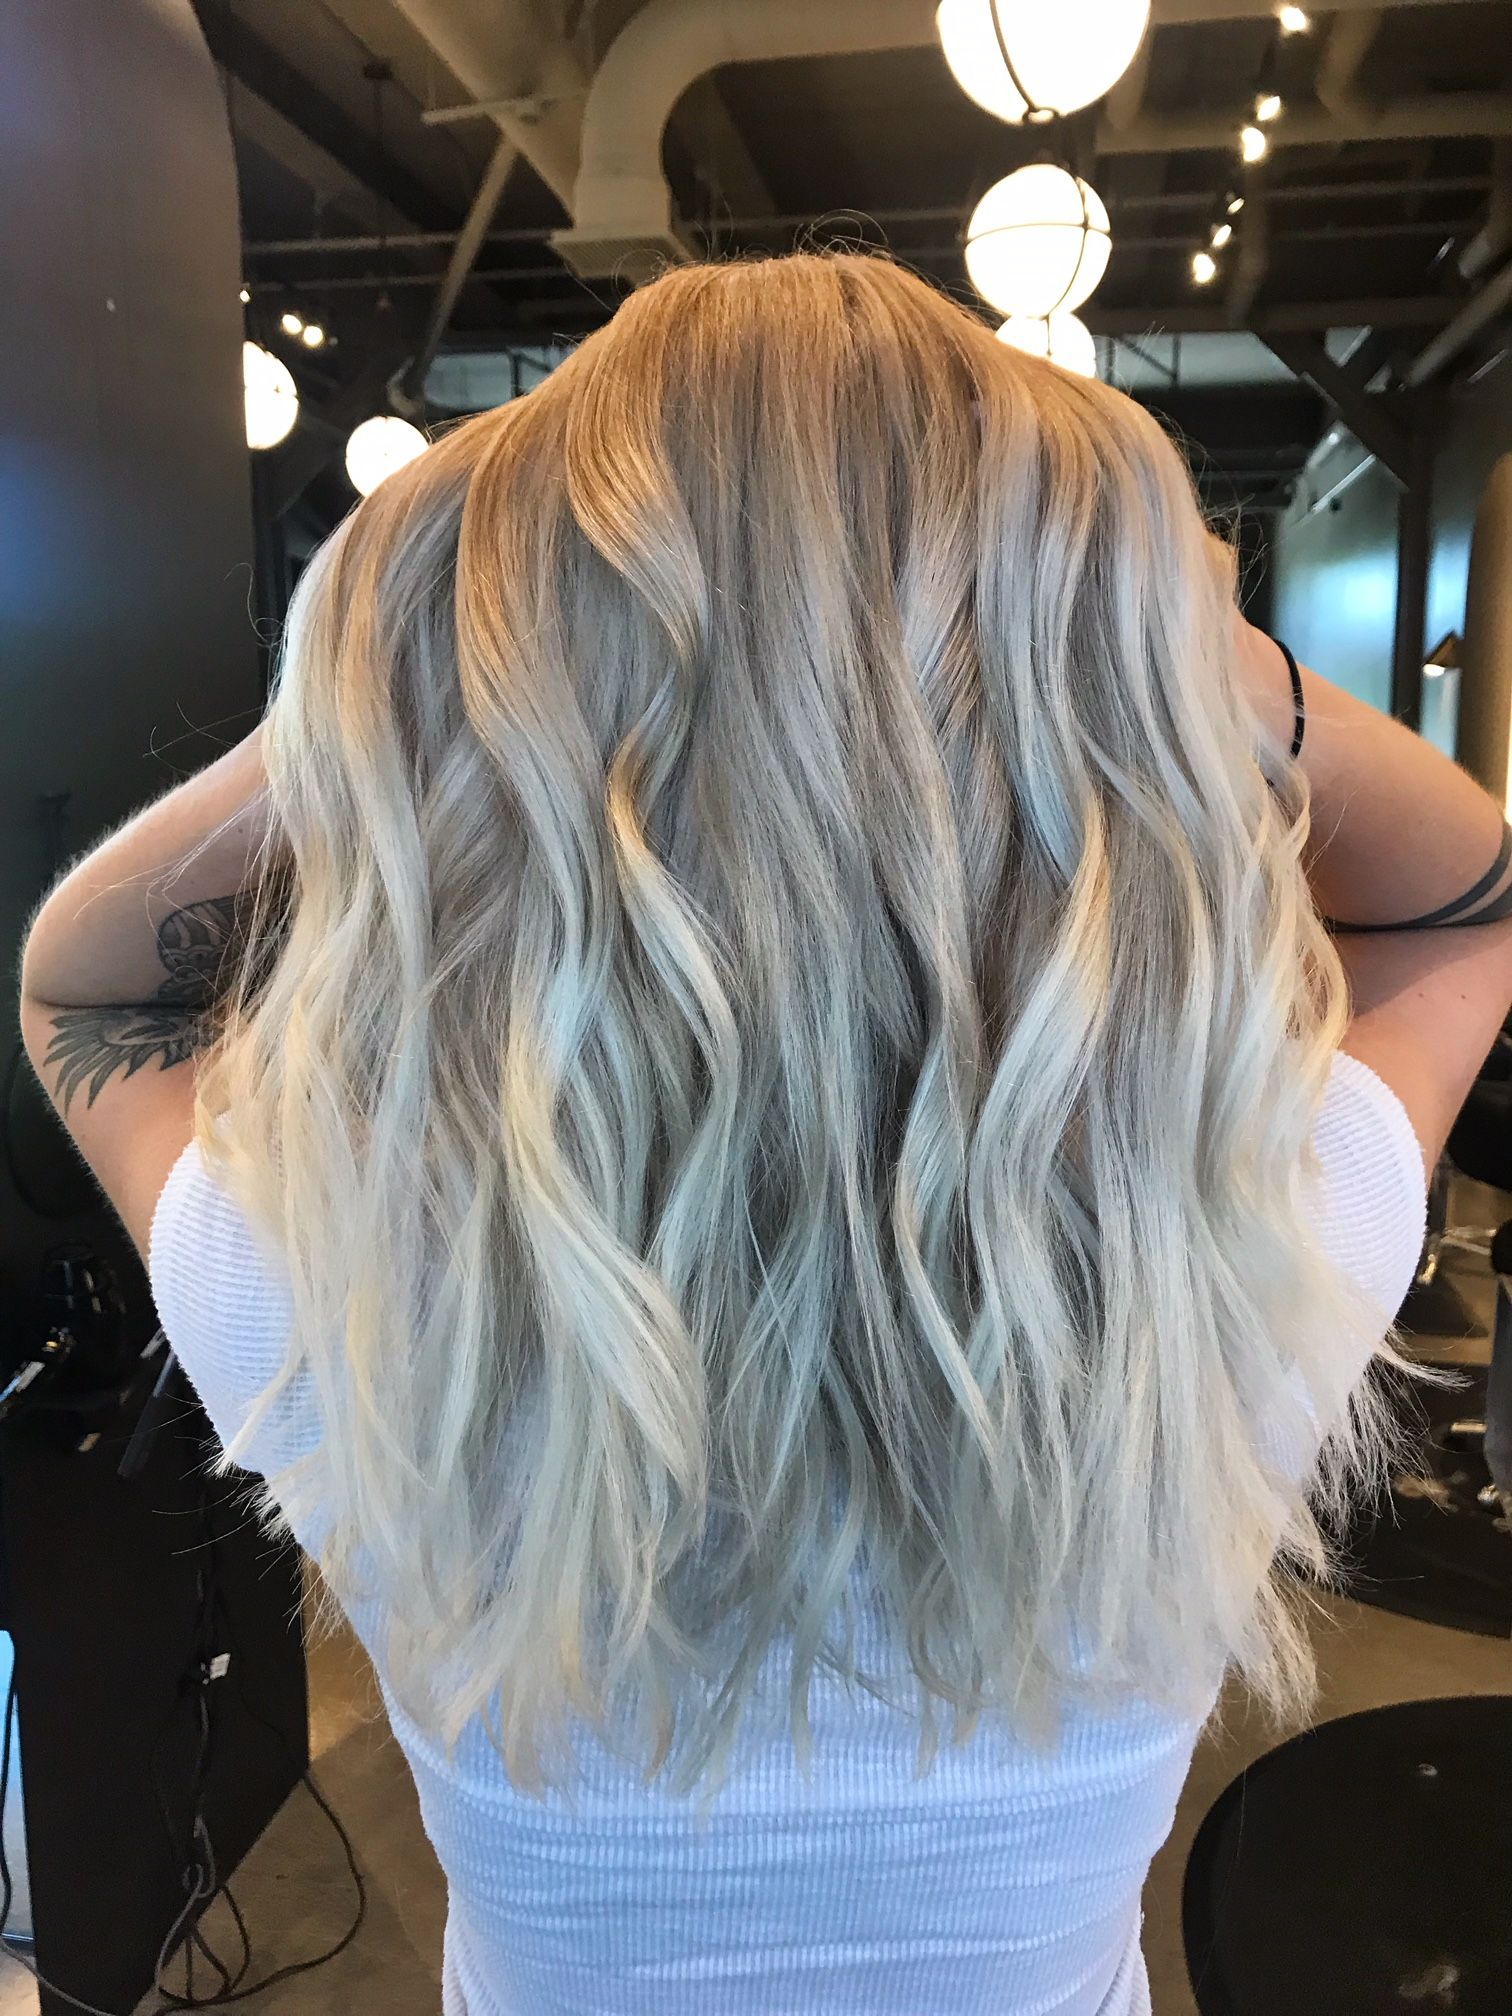 Do You Dream In Blonde If So Call Us Now And Let Our Color Specialists Help You To Achieve Your Hairgoals Designer Blond Best Hair Salon Carmel Hair Hair